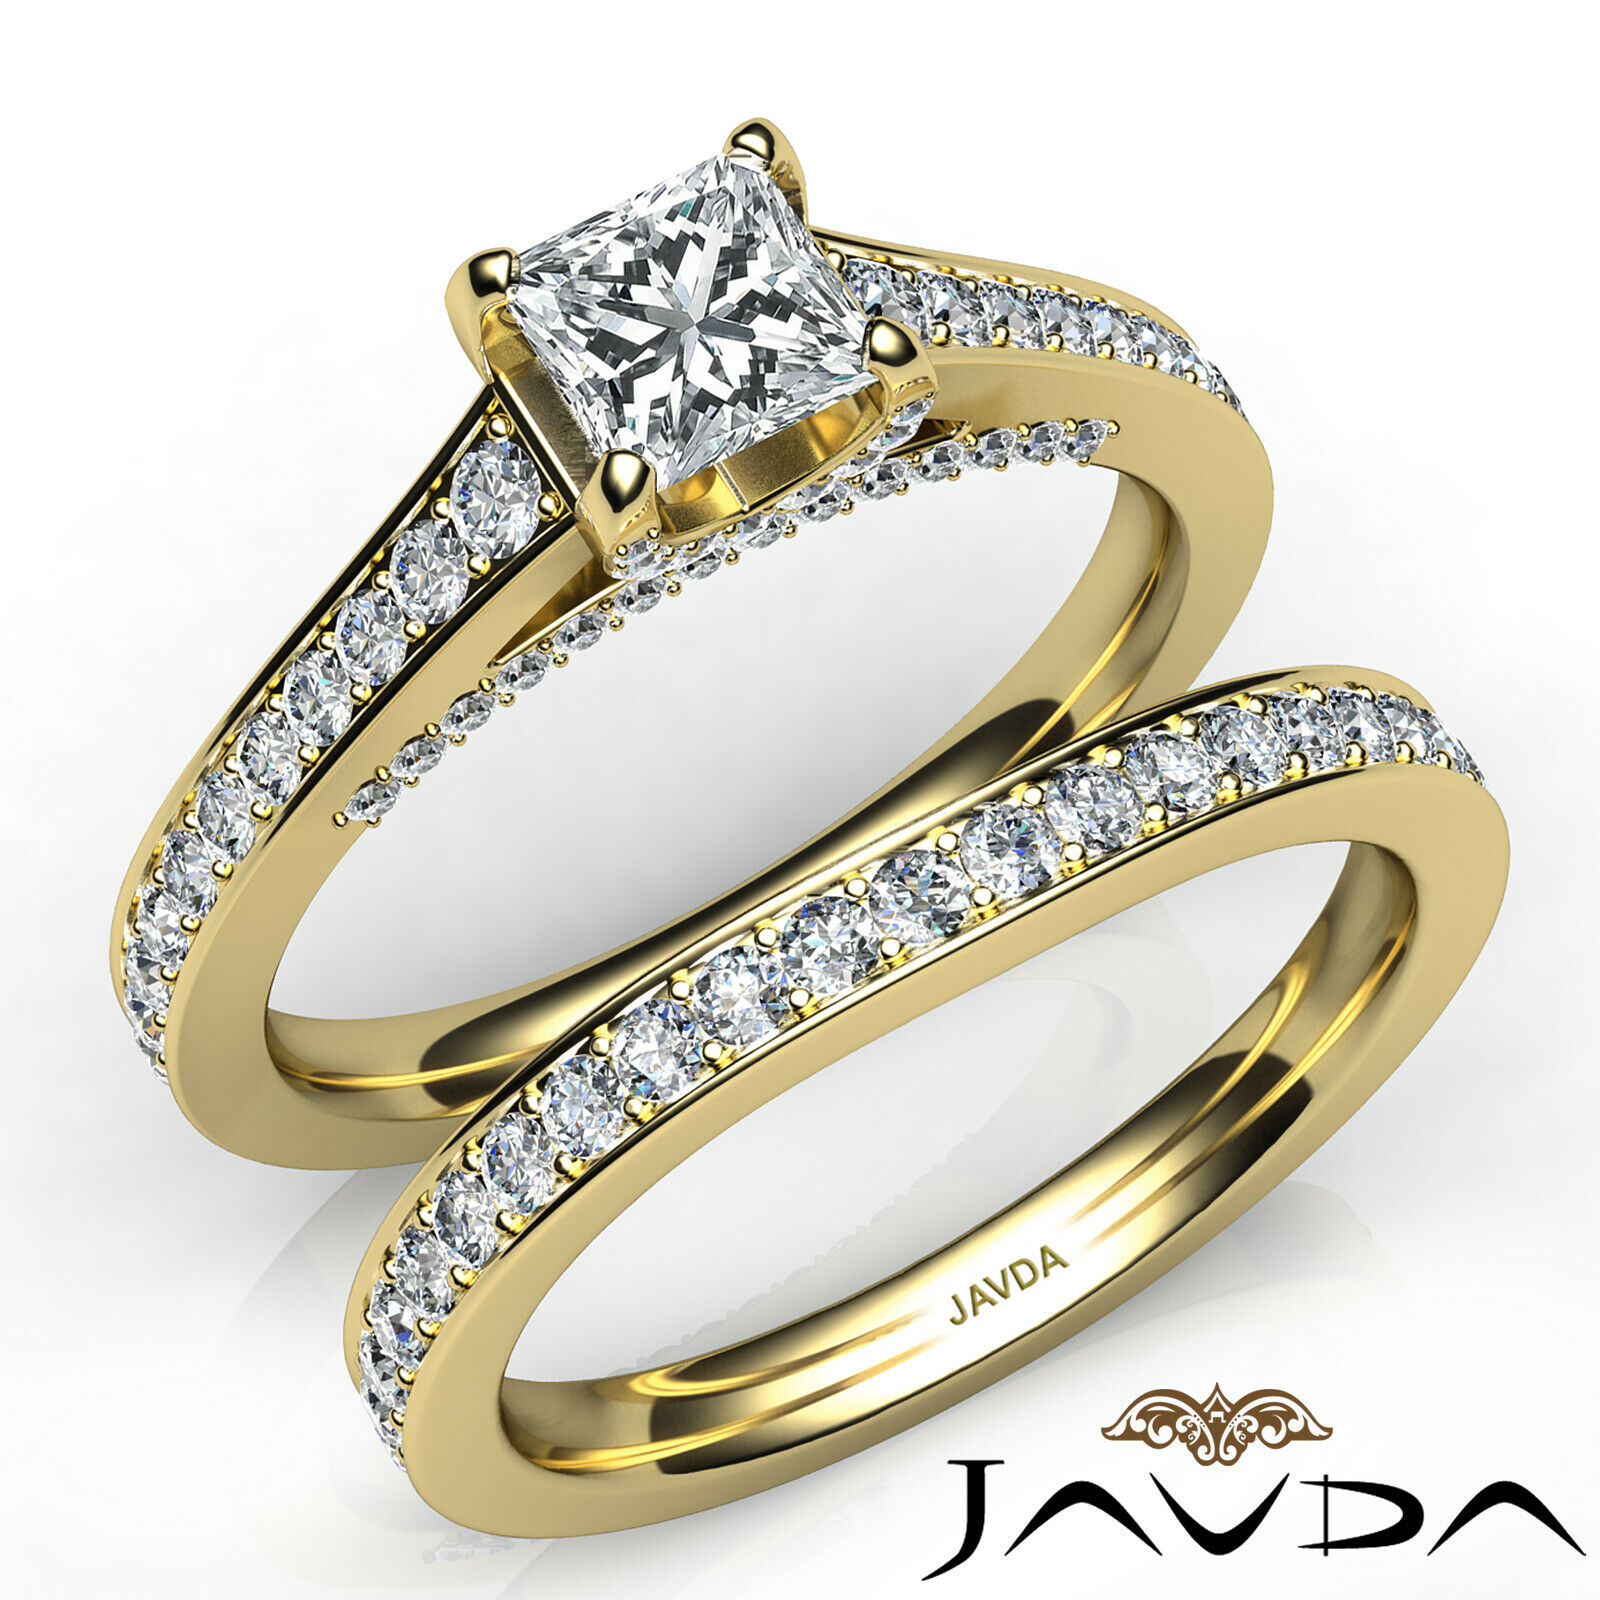 2.05ct Accent Bridge Pave Bridal Princess Diamond Engagement Ring GIA F-VS2 Gold 8